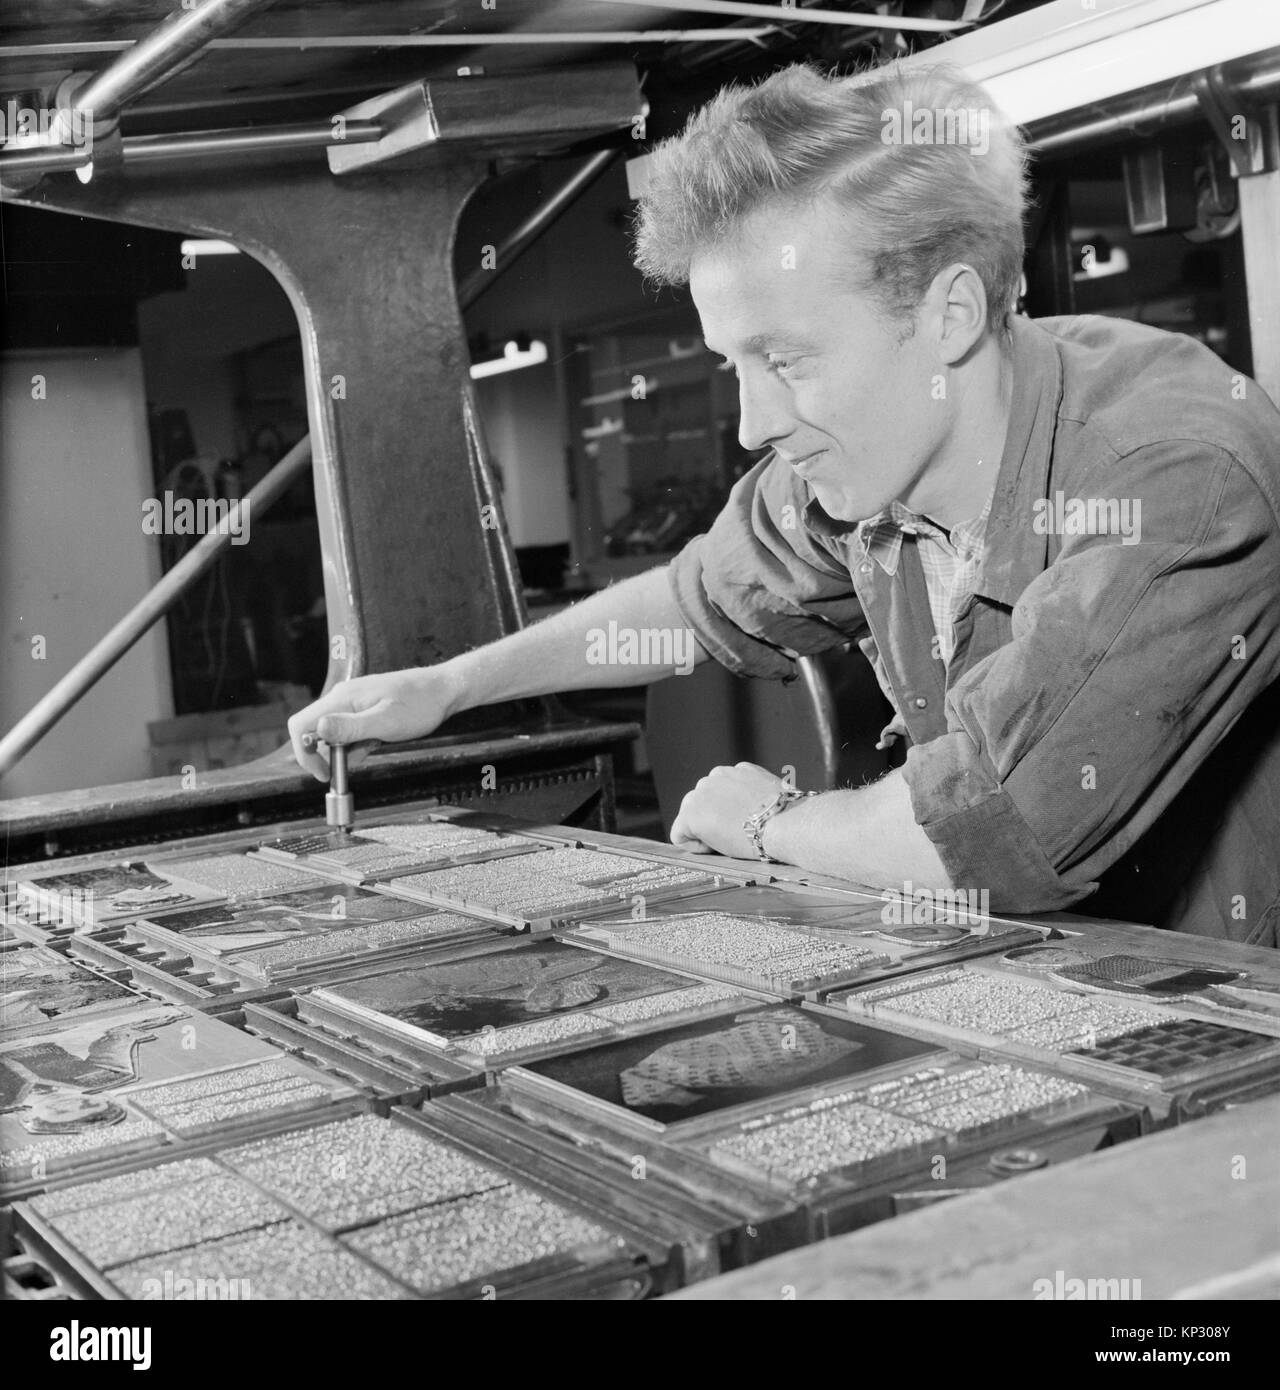 Male print worker working with printing press typeset, Helsinki, Finland, 1957 - Stock Image